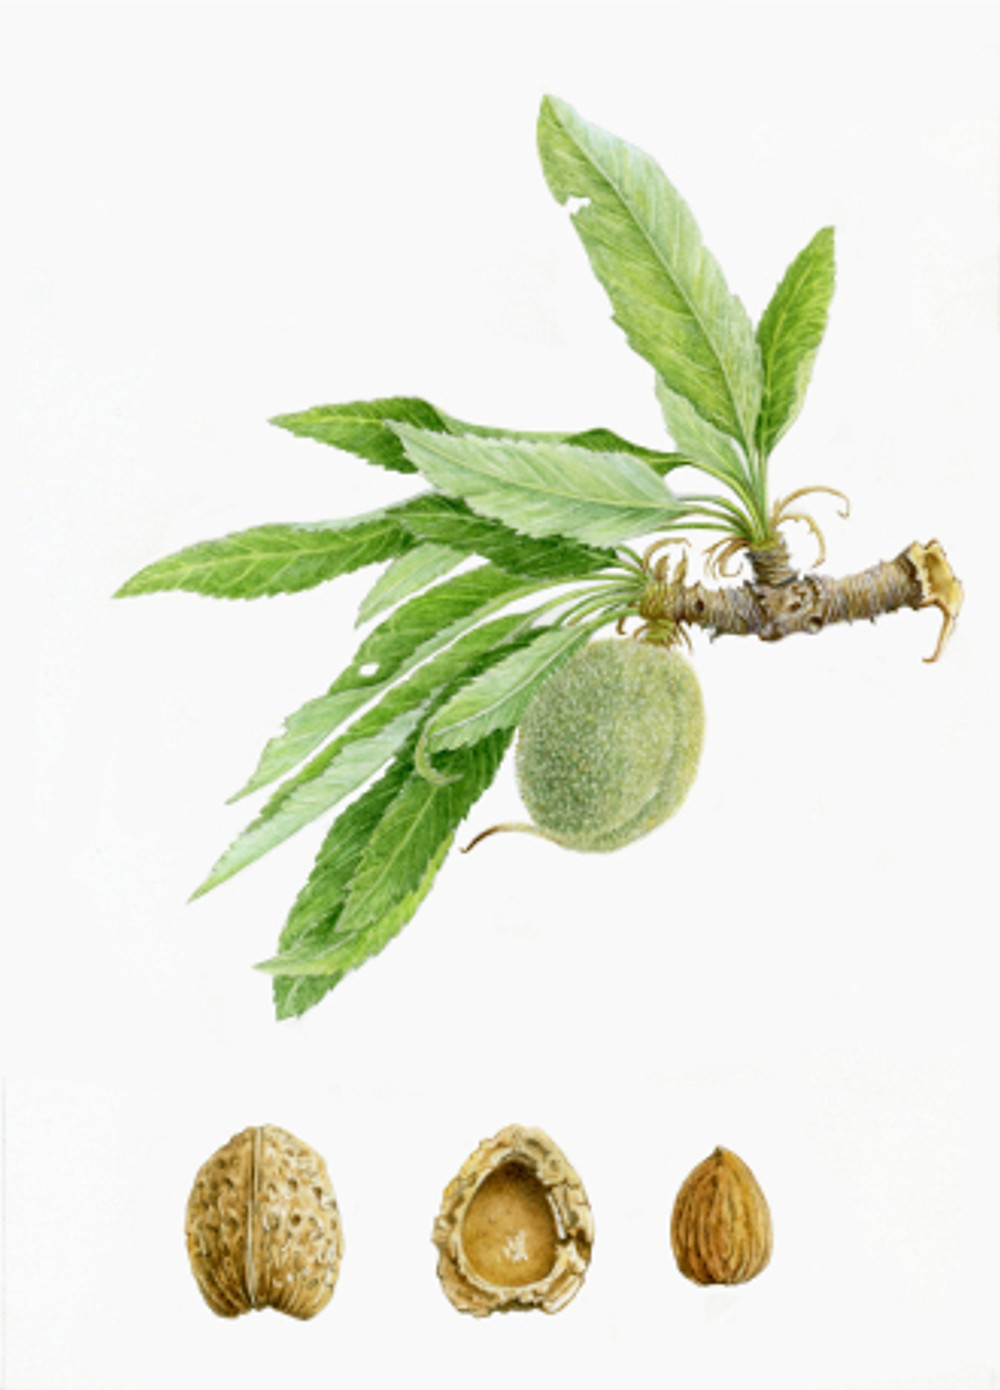 Prunus dulcis, Almond, watercolor by Margaret Best, © 2016, all rights reserved.